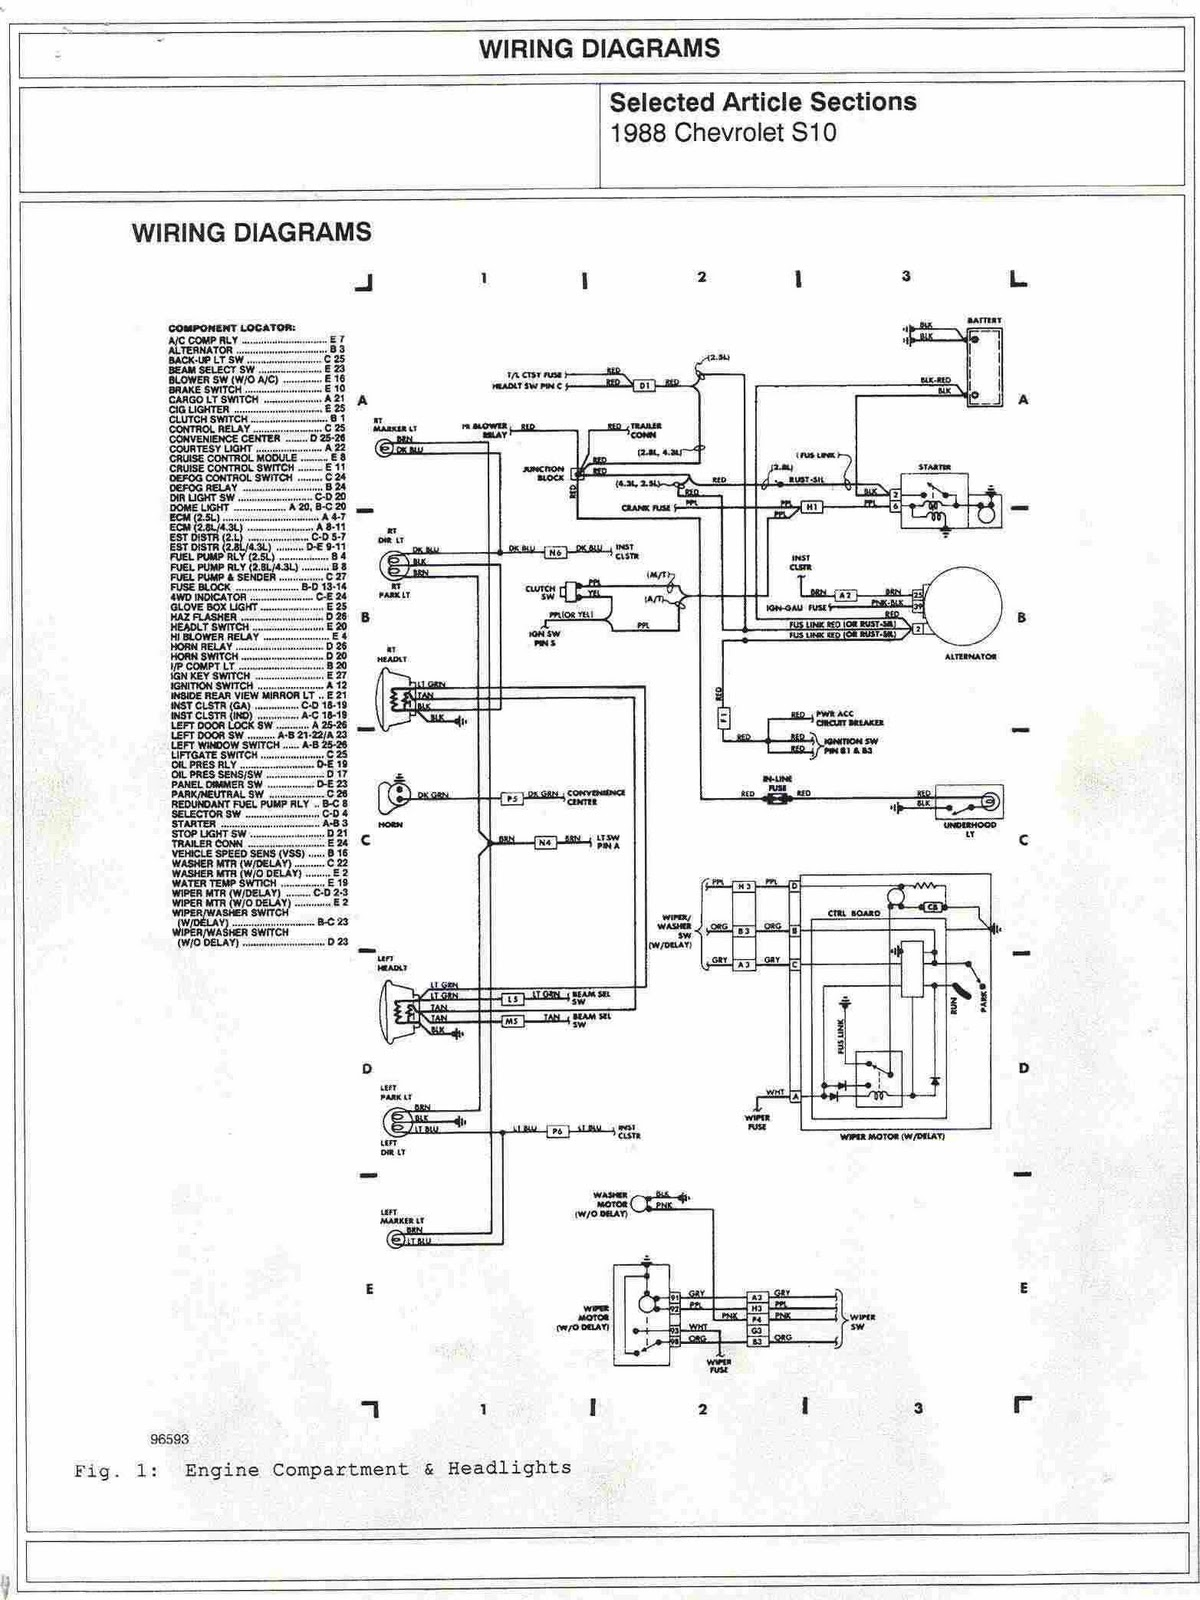 1988+Chevrolet+S10+Engine+Compartment+and+Headlights+Wiring+Diagrams 1988 chevy truck wiring diagram truck wiring schematics \u2022 wiring 66 C10 Chevy Truck Ignition Switch at alyssarenee.co